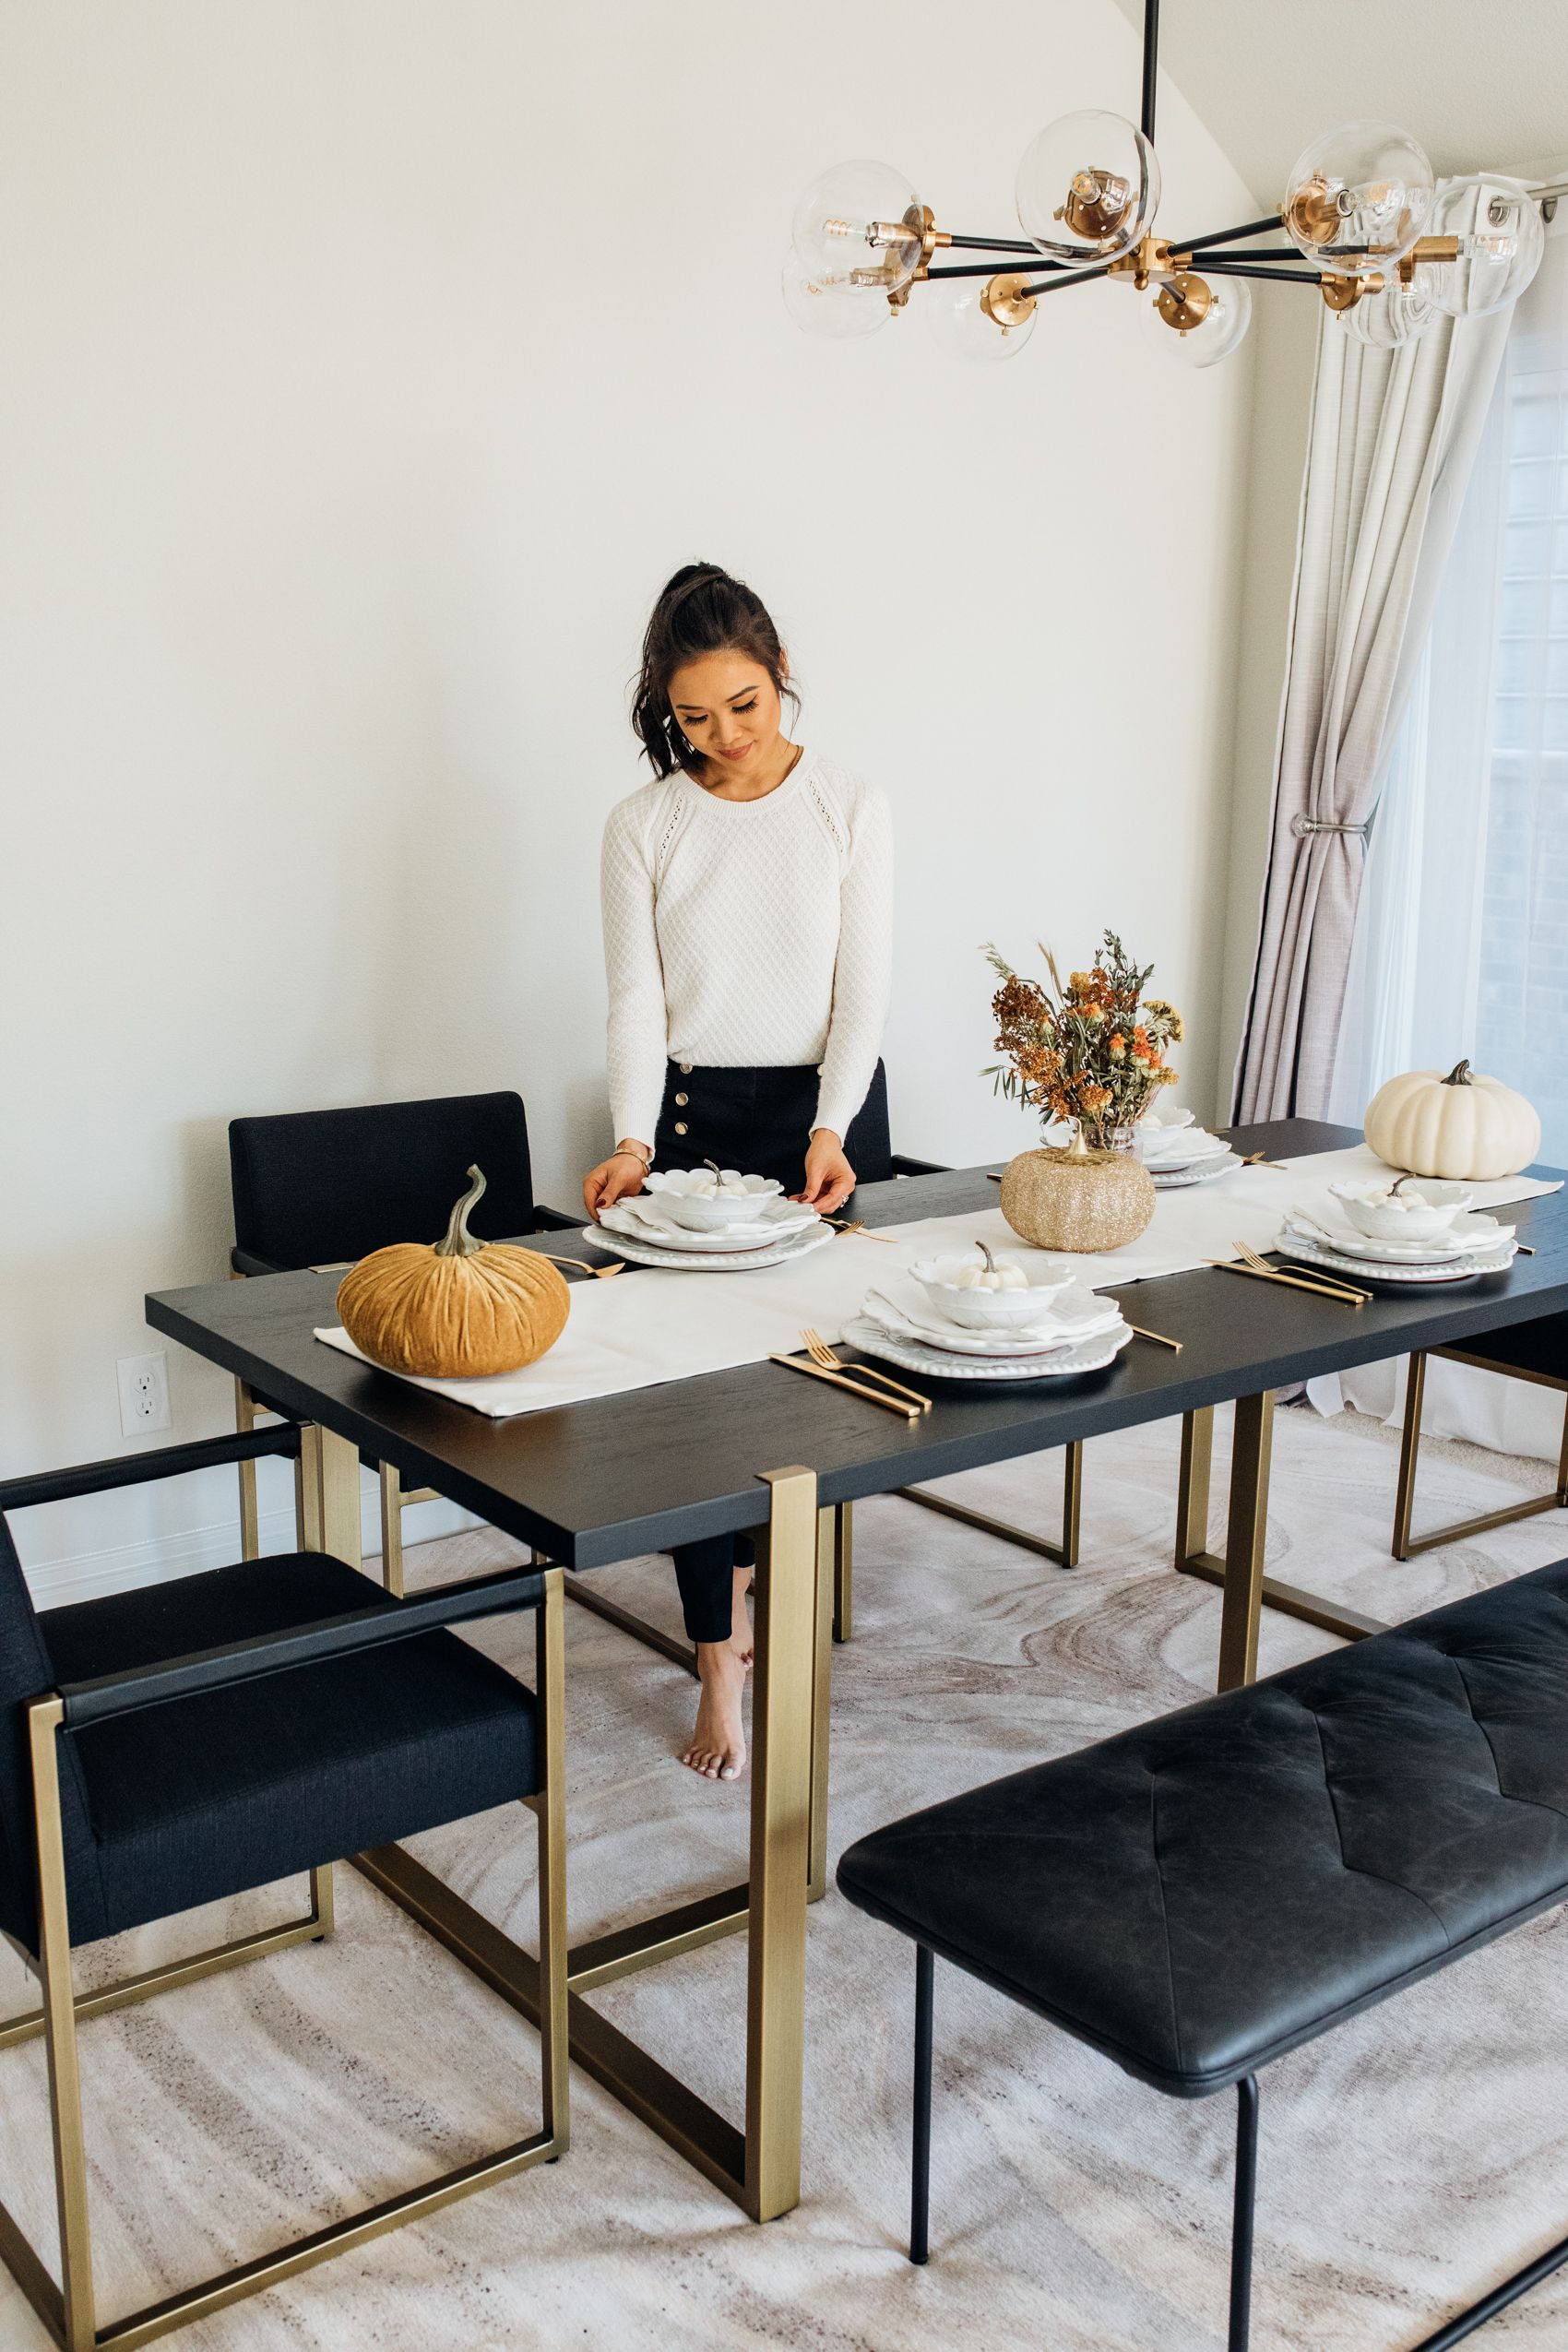 Article Oscuro Dining Table With Gold Legs In A Modern Dining Room